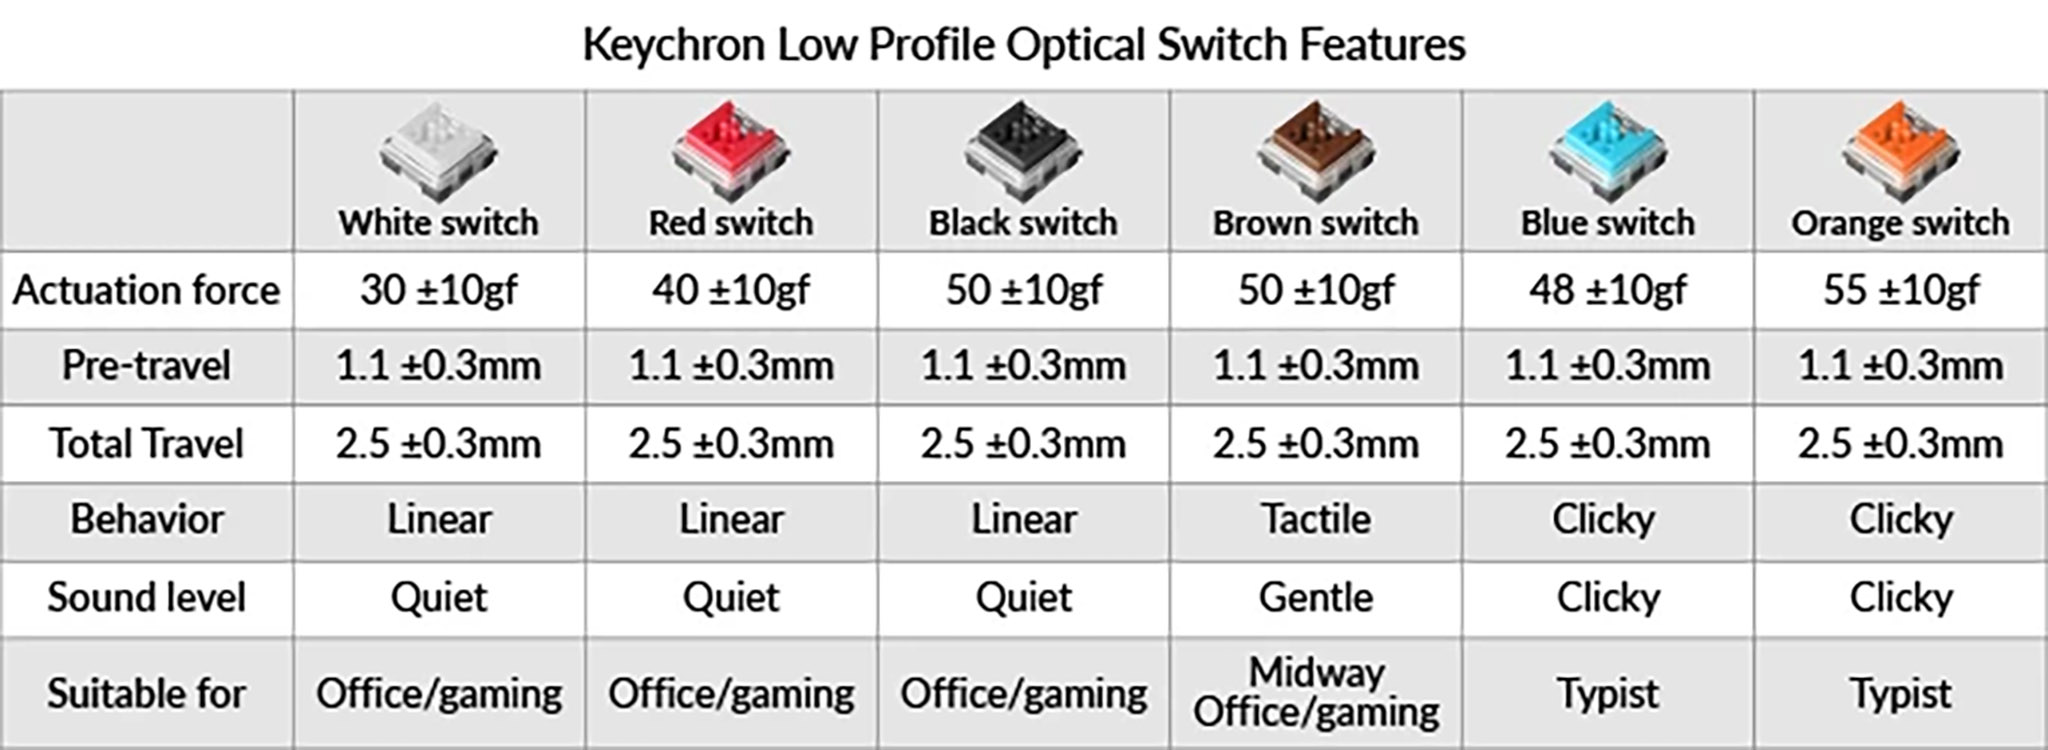 Keychron Optical.jpg